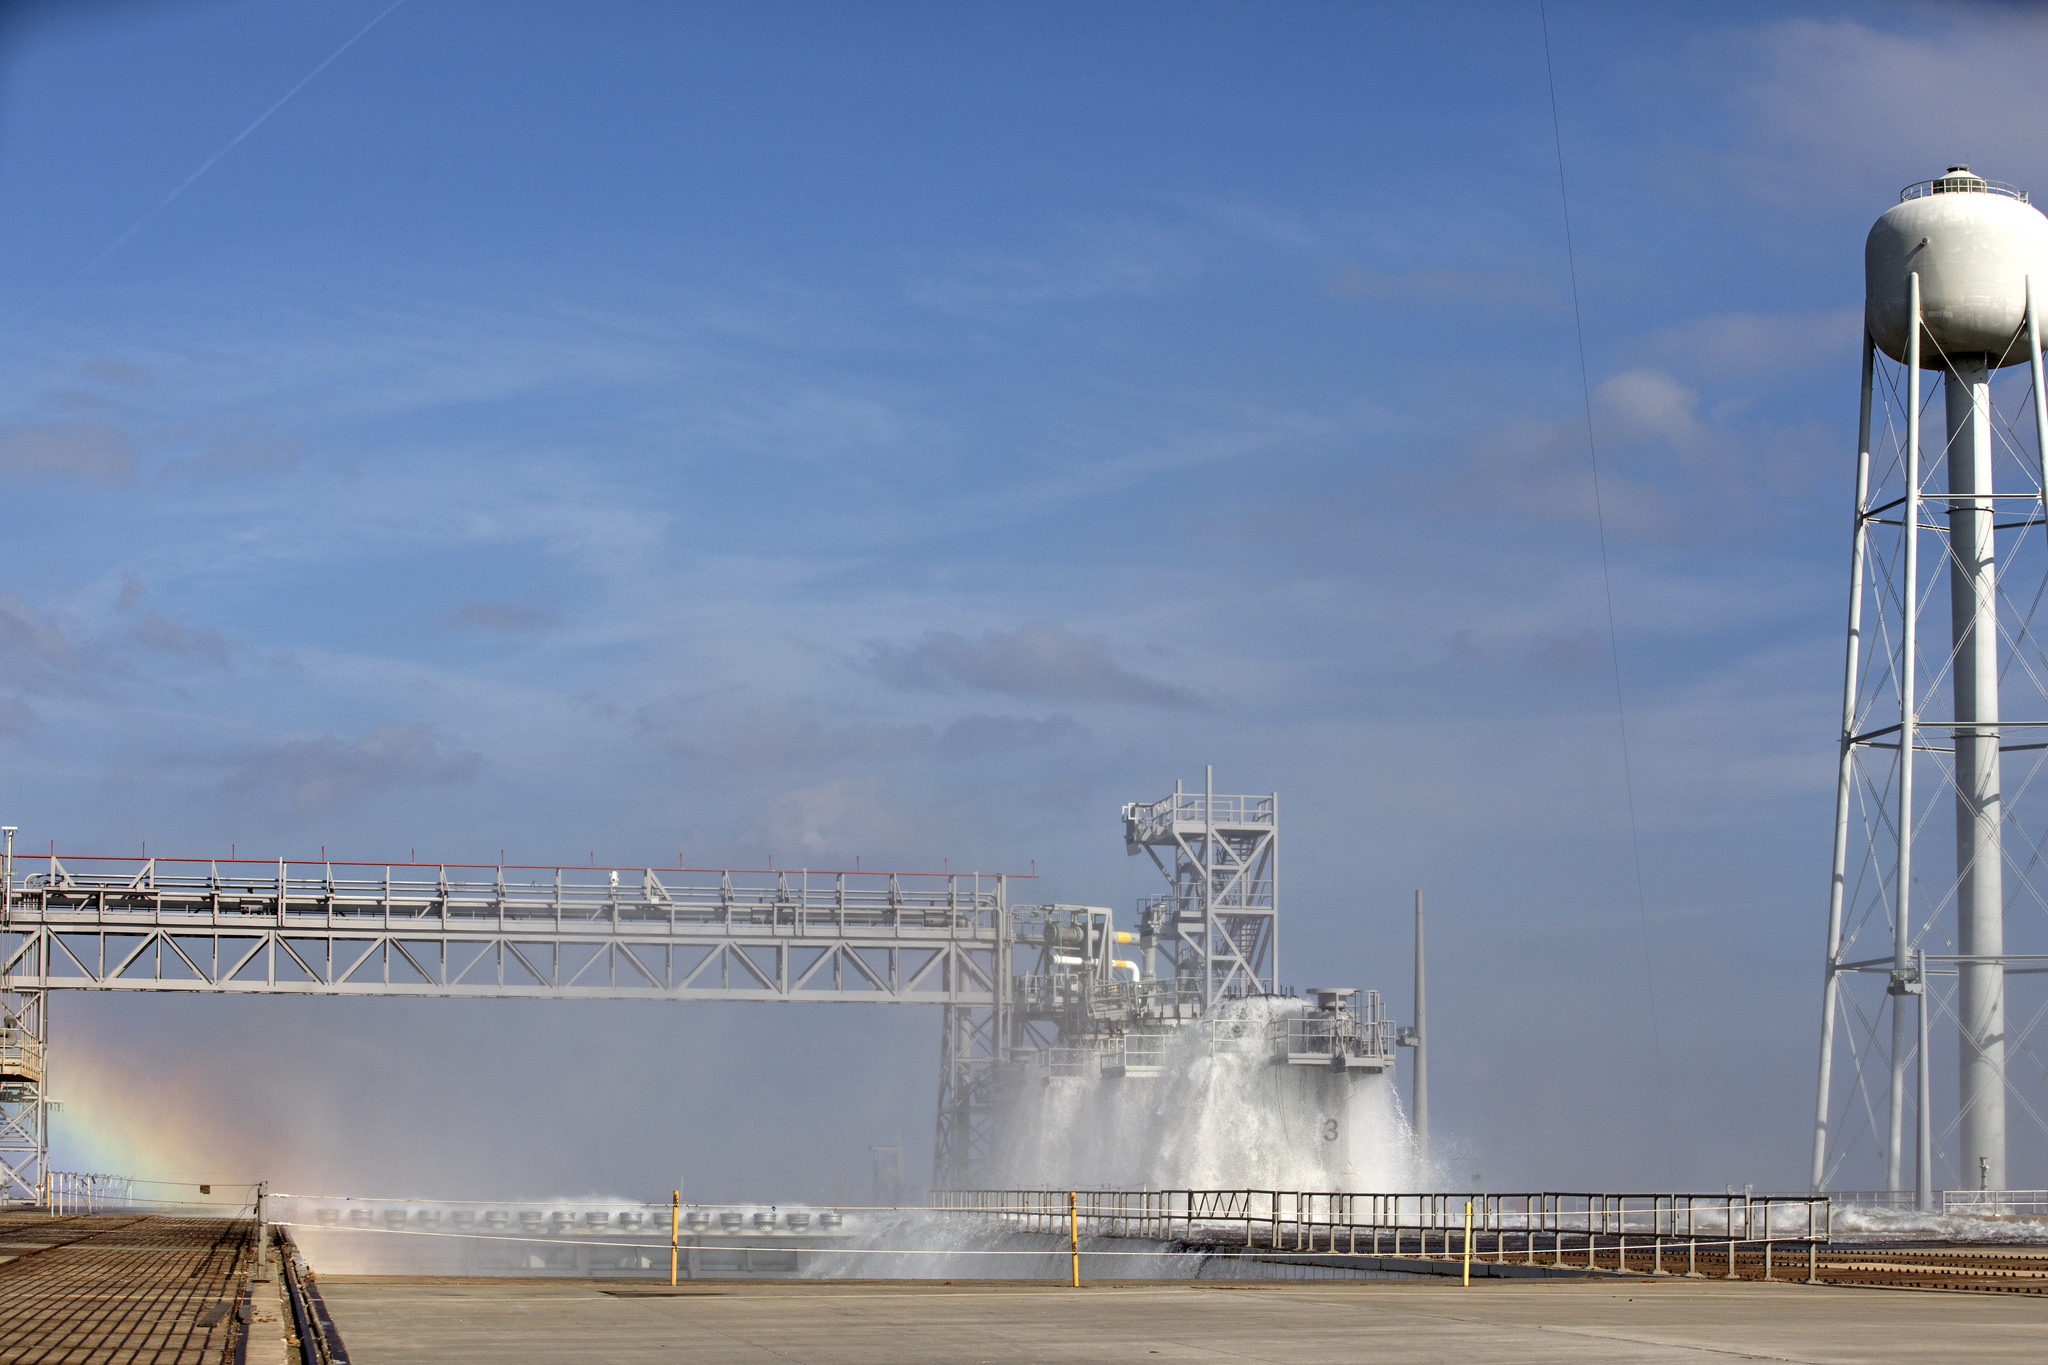 Water Deluge Test is a Success at Launch Pad 39B   NASA